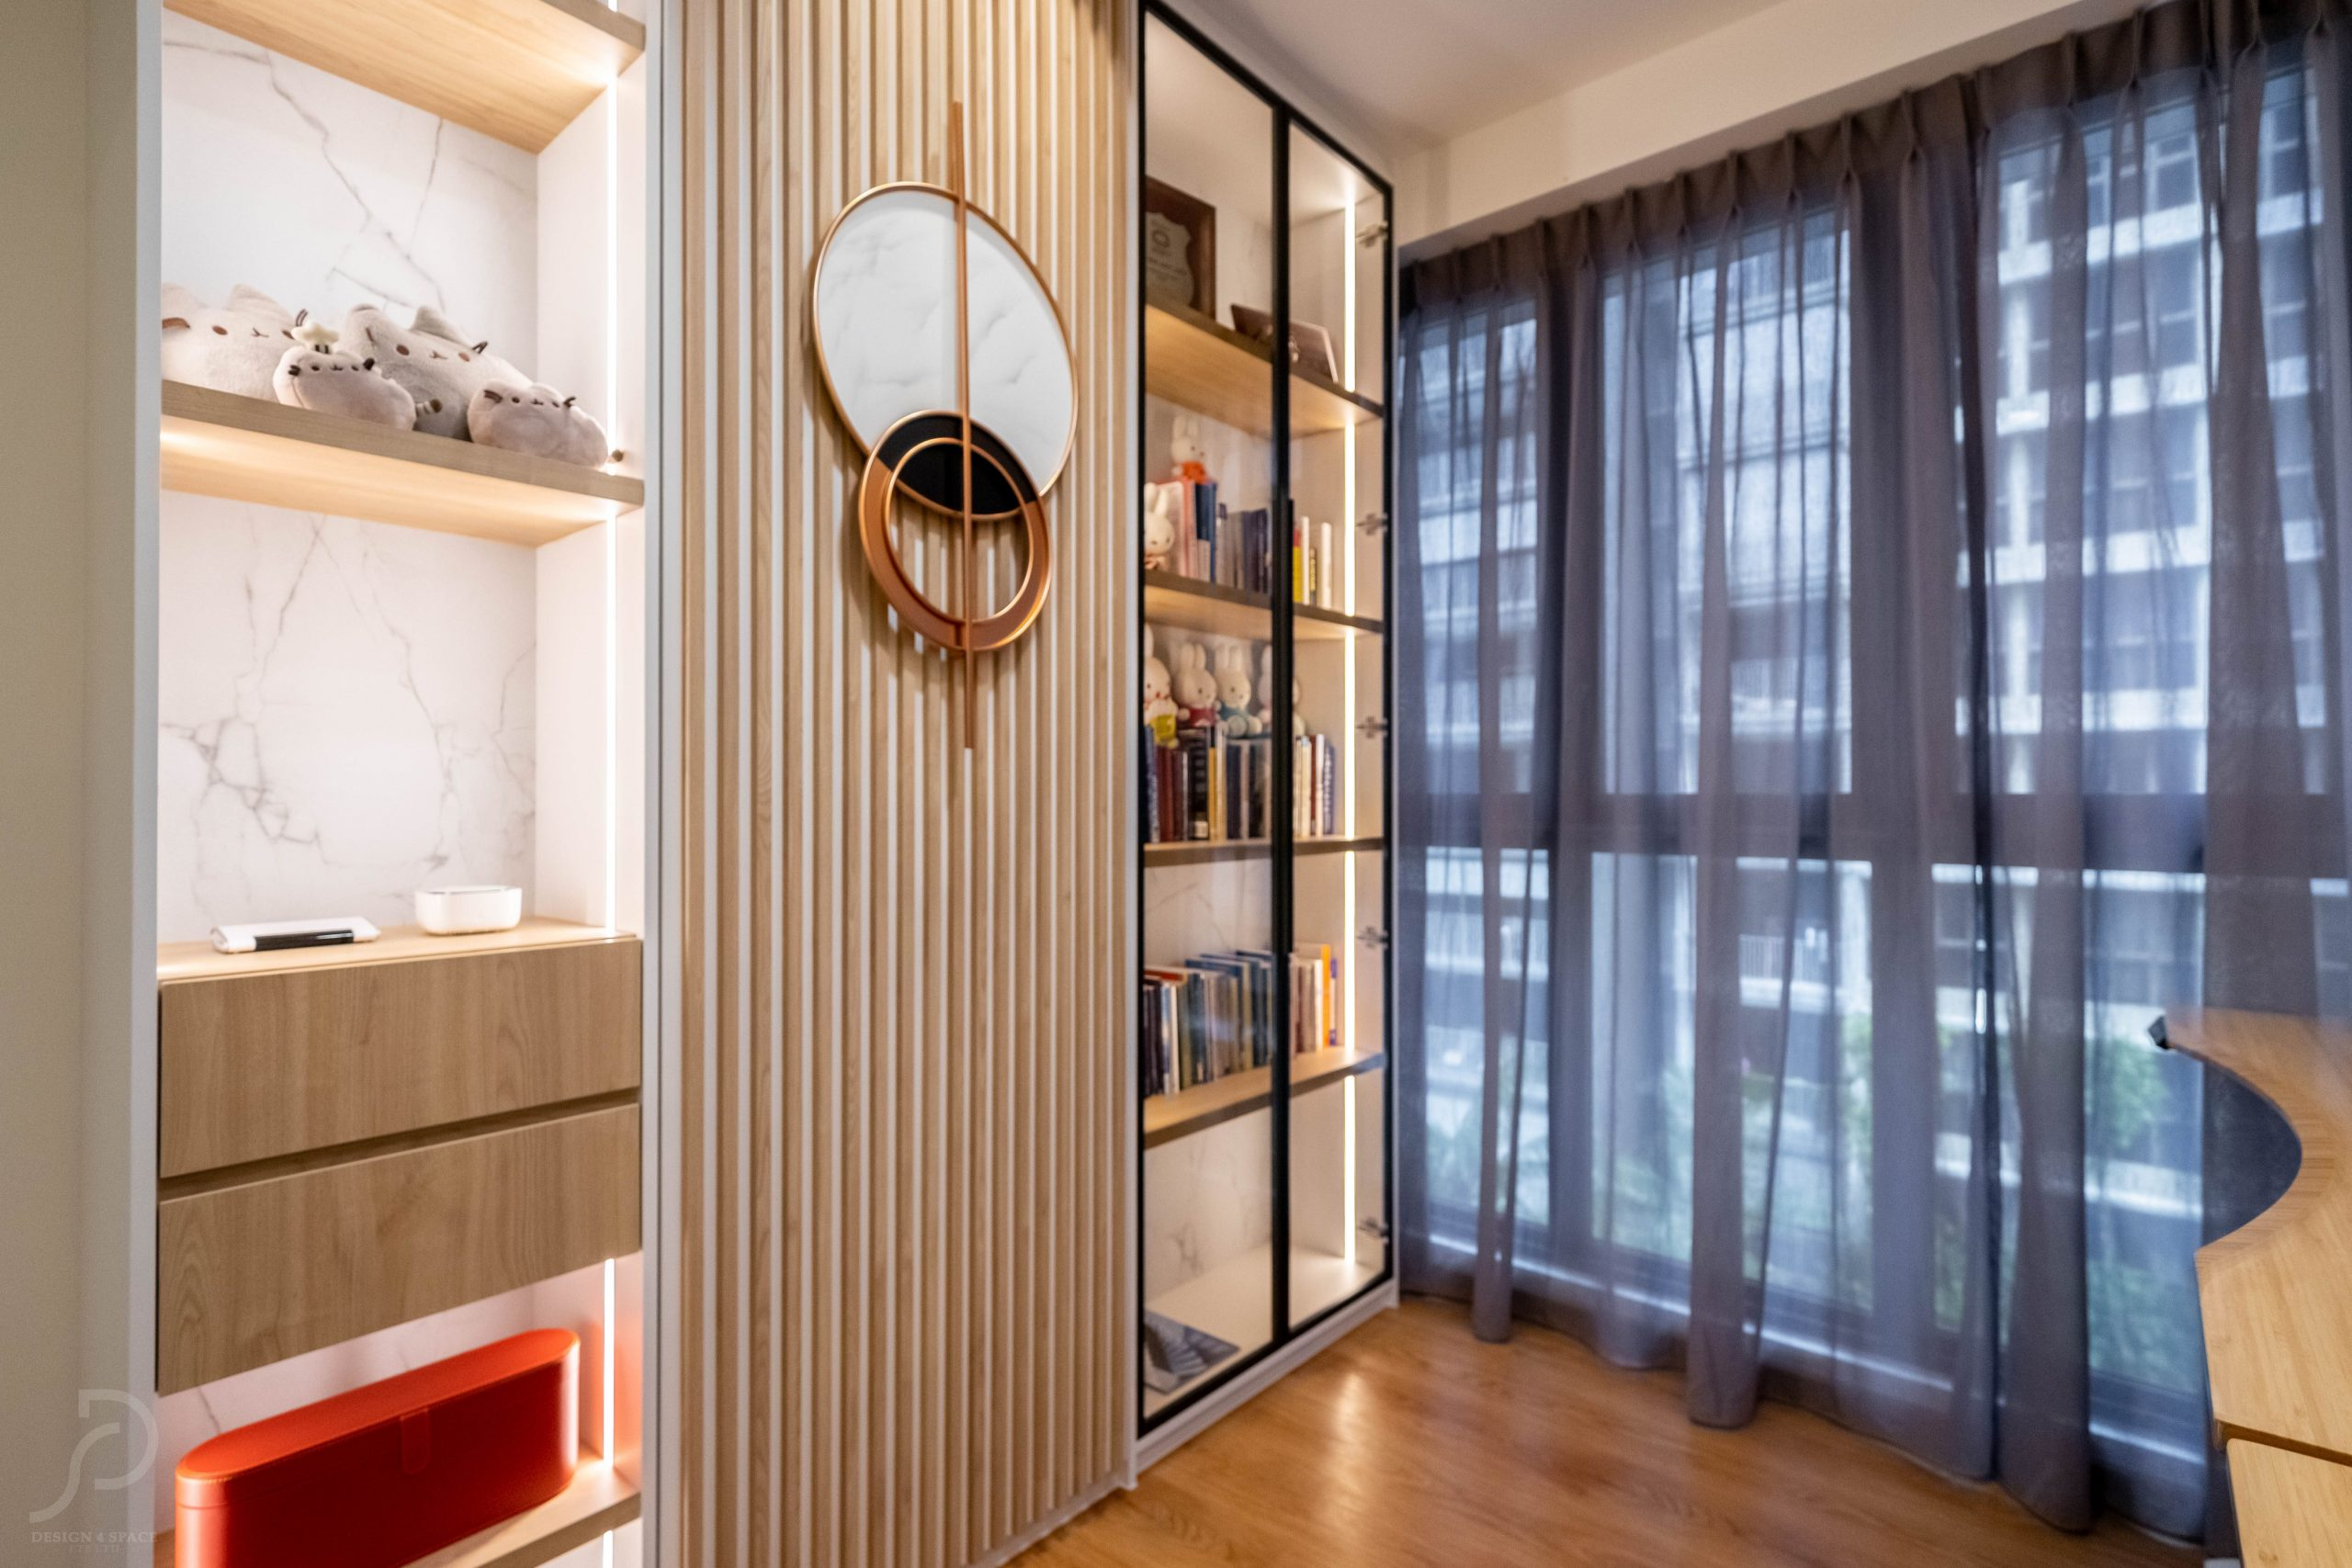 357 - rivercove residence - vincent - mid res watermark6